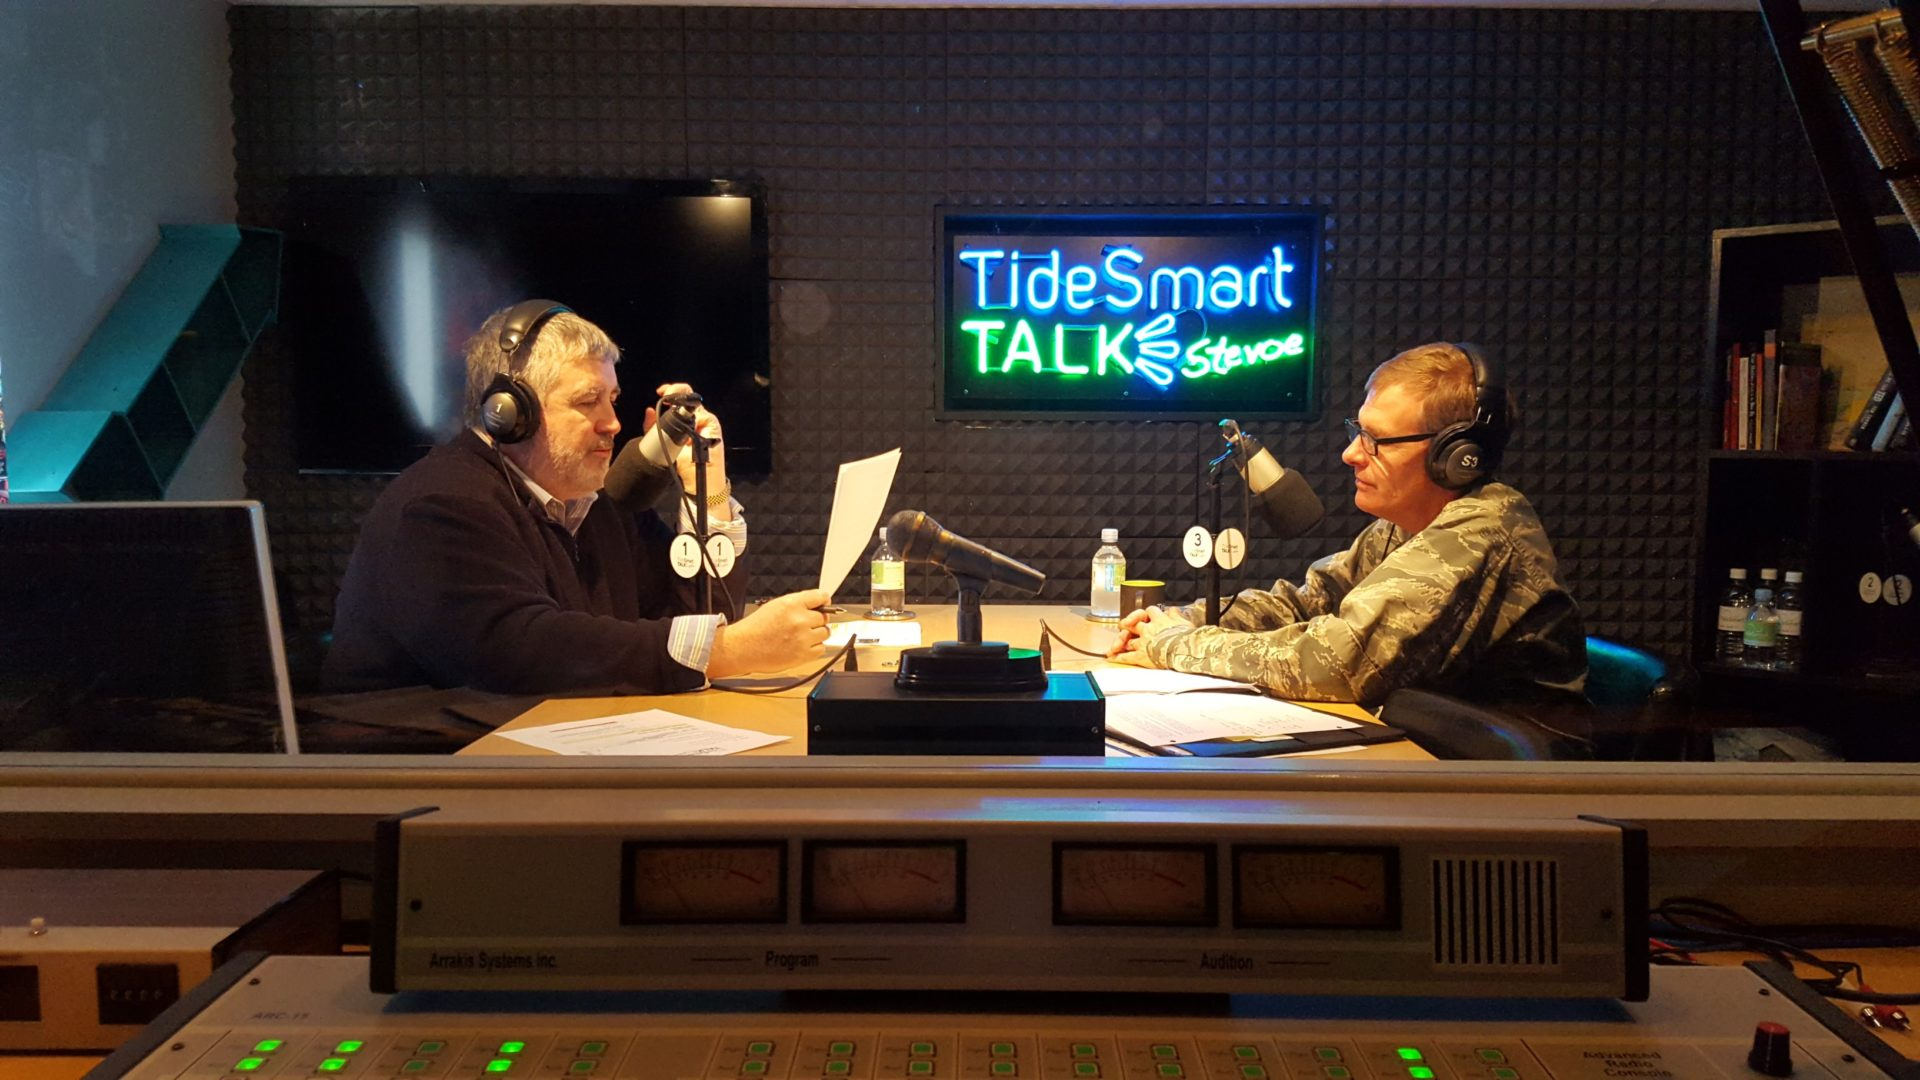 Host of TideSmart Talk with Stevoe, Steve Woods, welcomed Brigadier General Doug Farnham (at right).